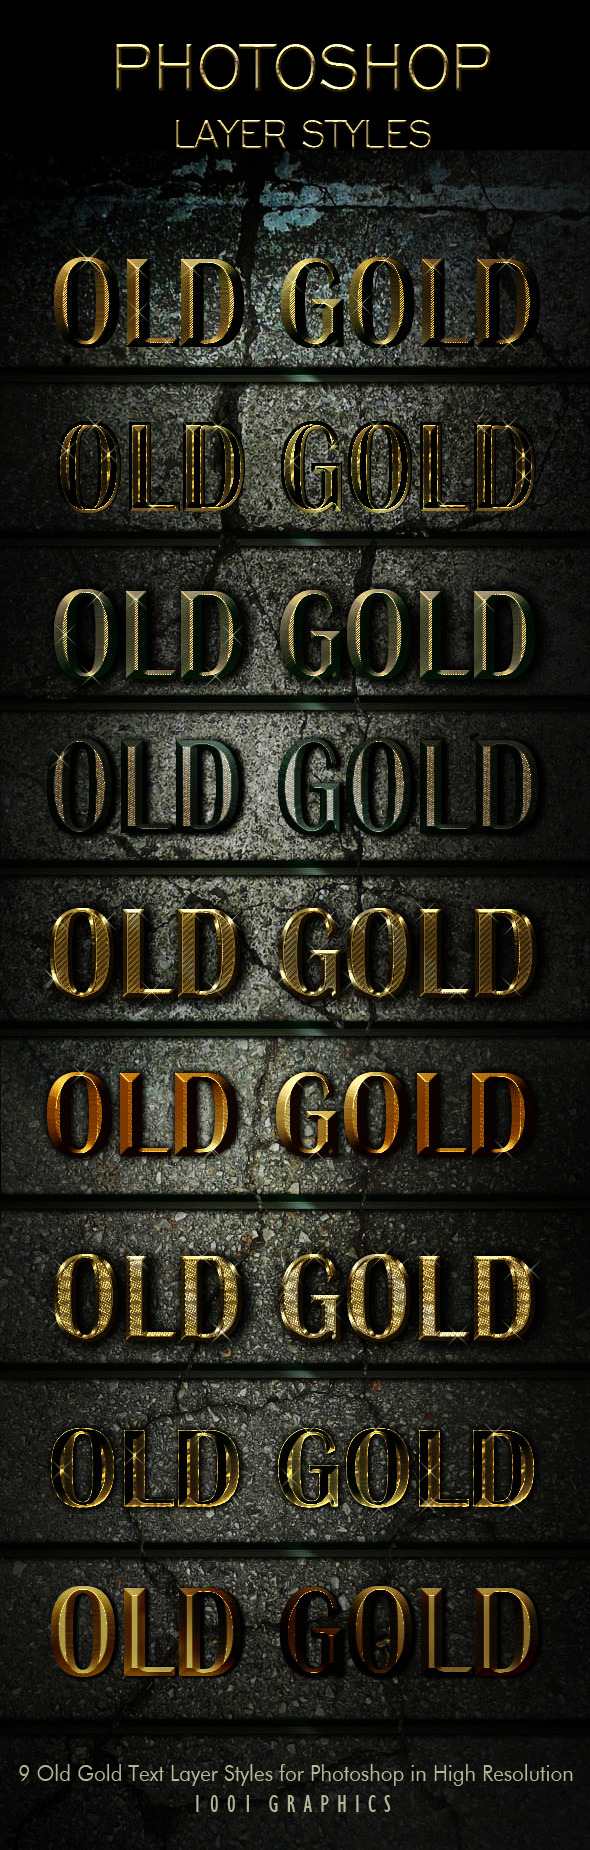 9 Old Gold Text Effects Styles ASL - Photoshop Add-ons